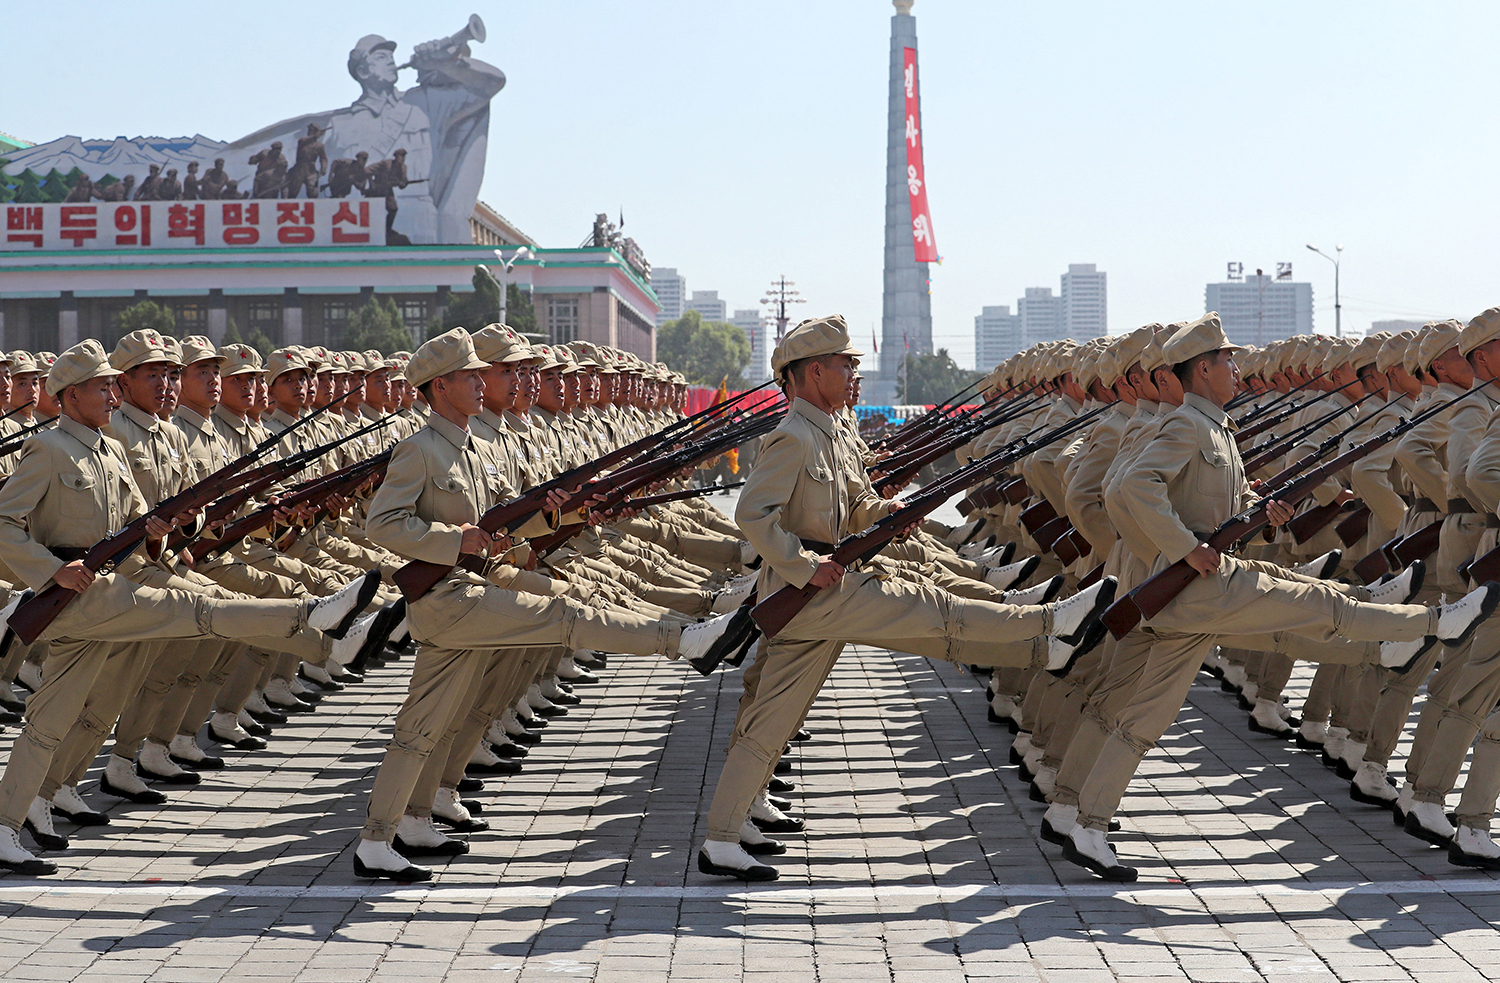 Troops march during a military parade marking the 70th anniversary of the foundation of North Korea in Pyongyang, North Korea on Sunday, Sept. 9, 2018. (Alexander Demianchuk/Tass/Abaca Press/TNS)